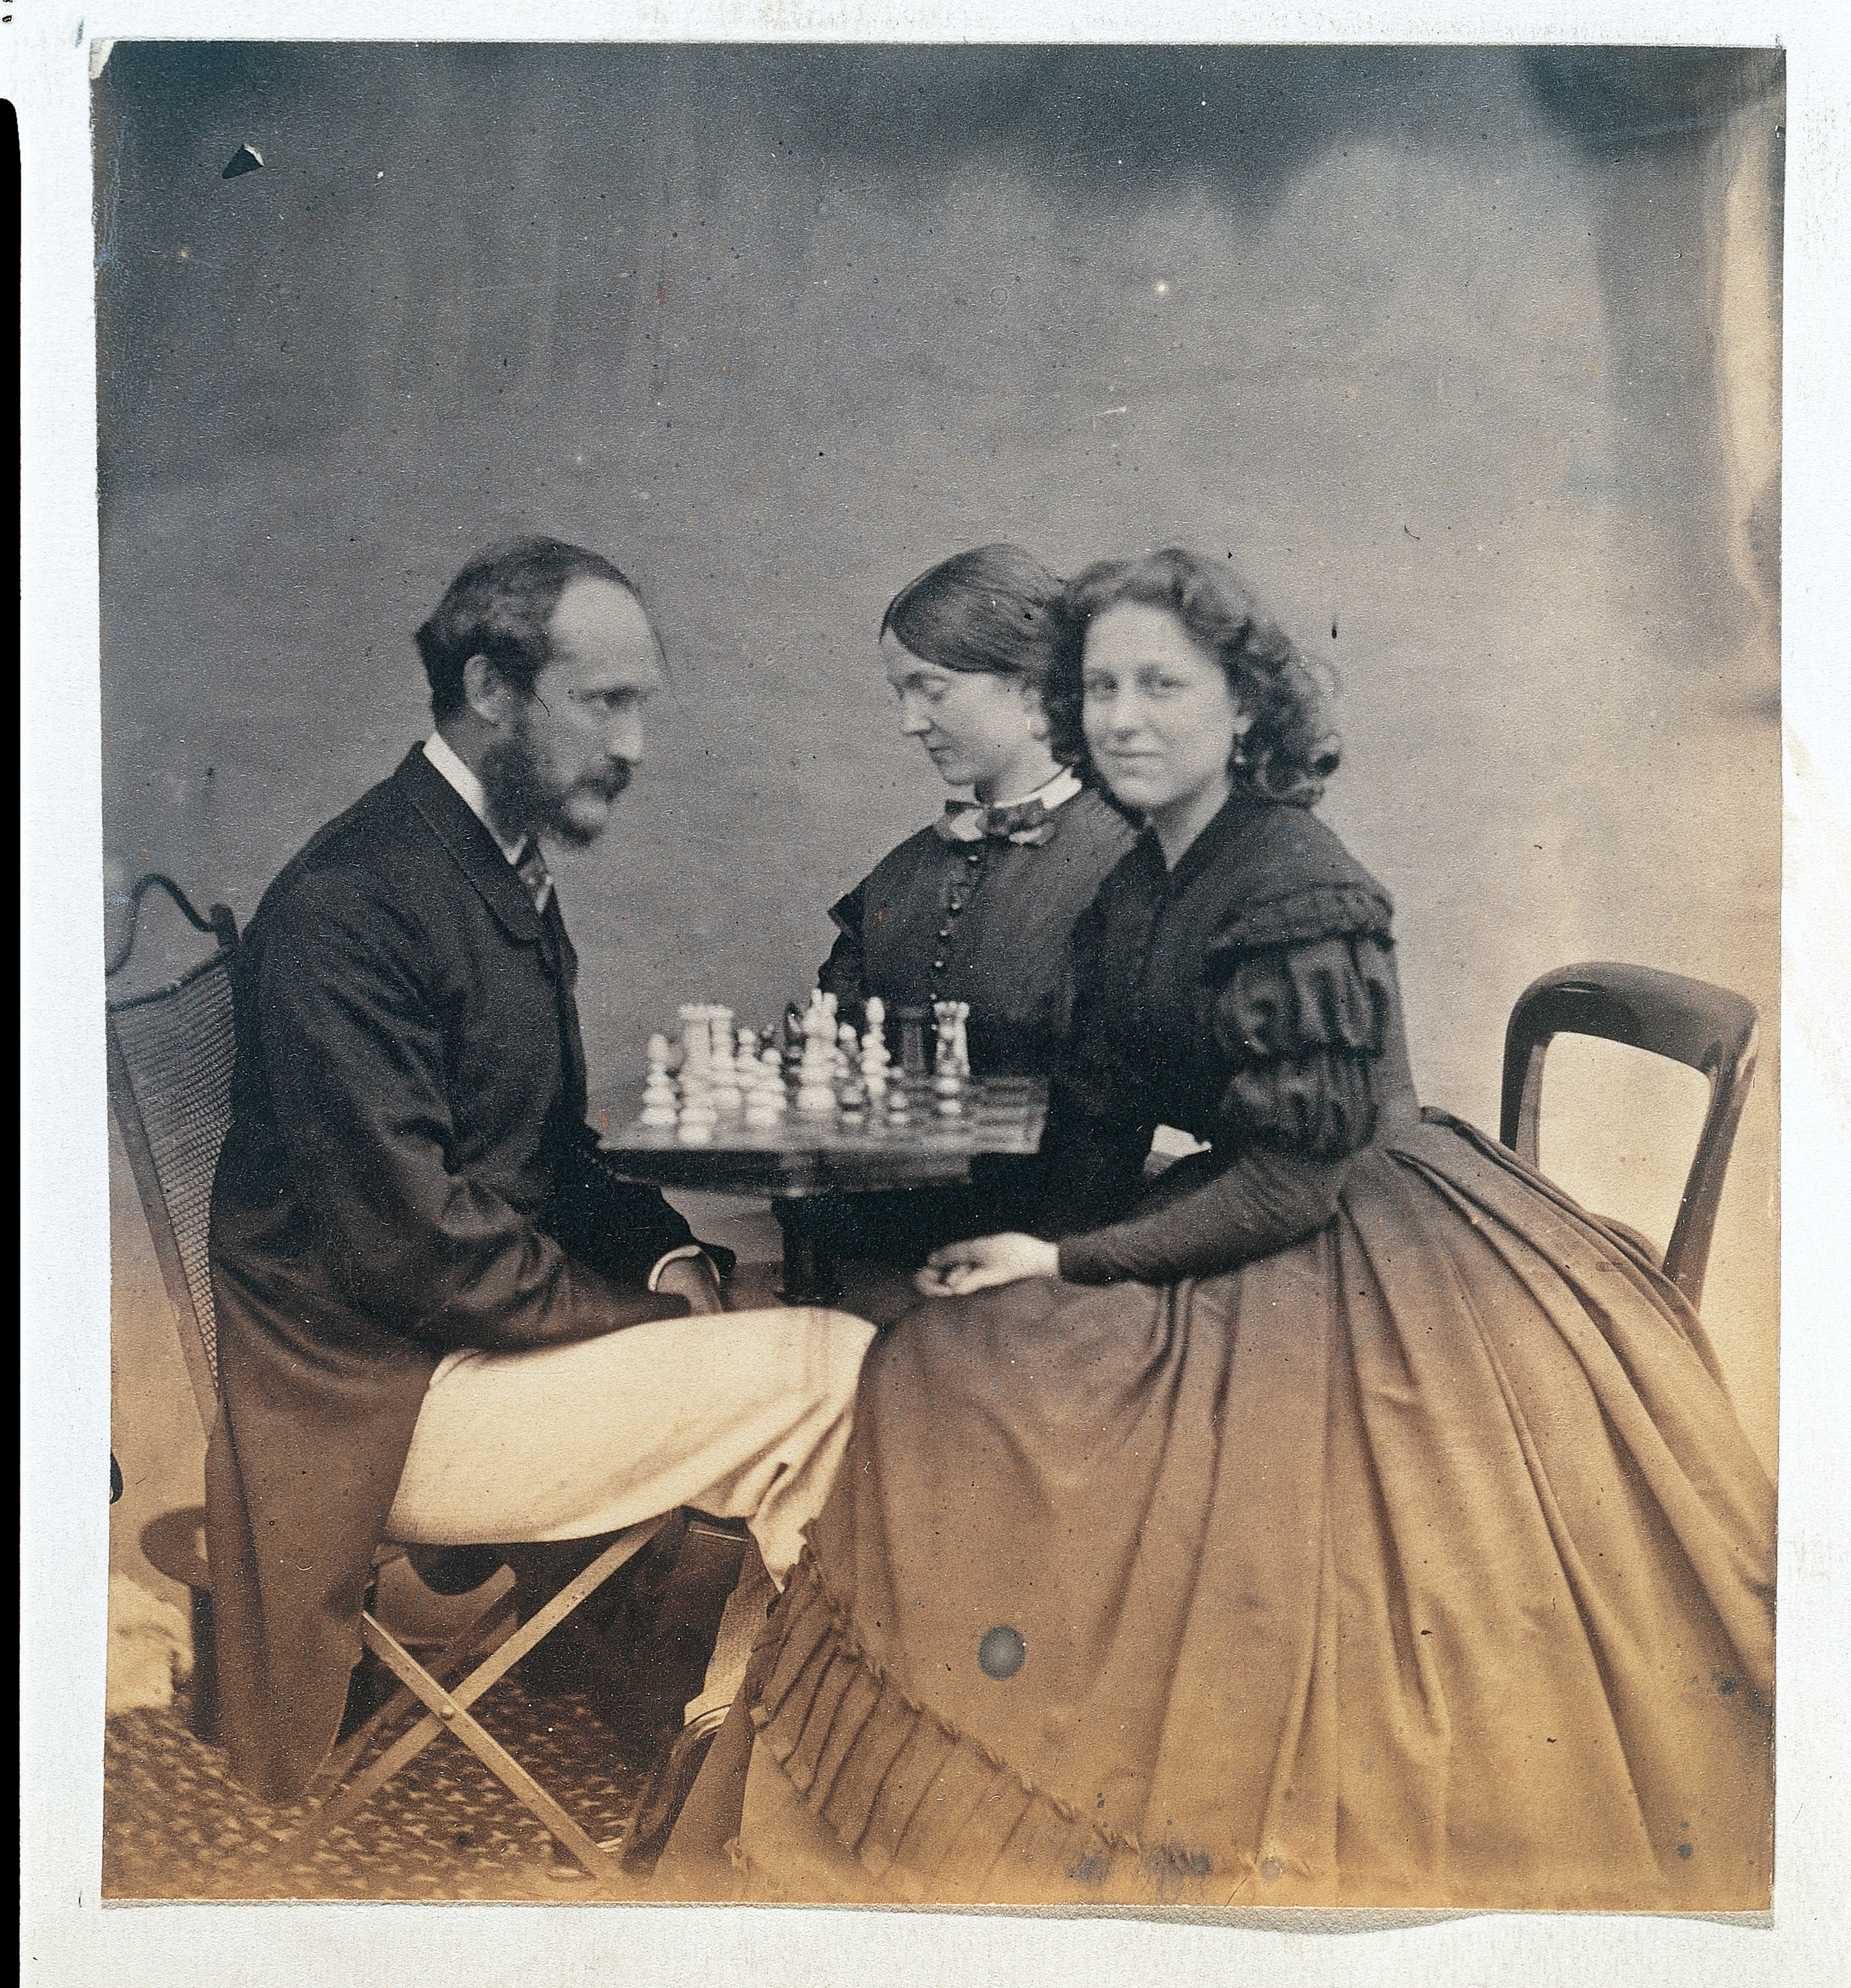 An old photograph of two women sitting across a table and playing chess with a man